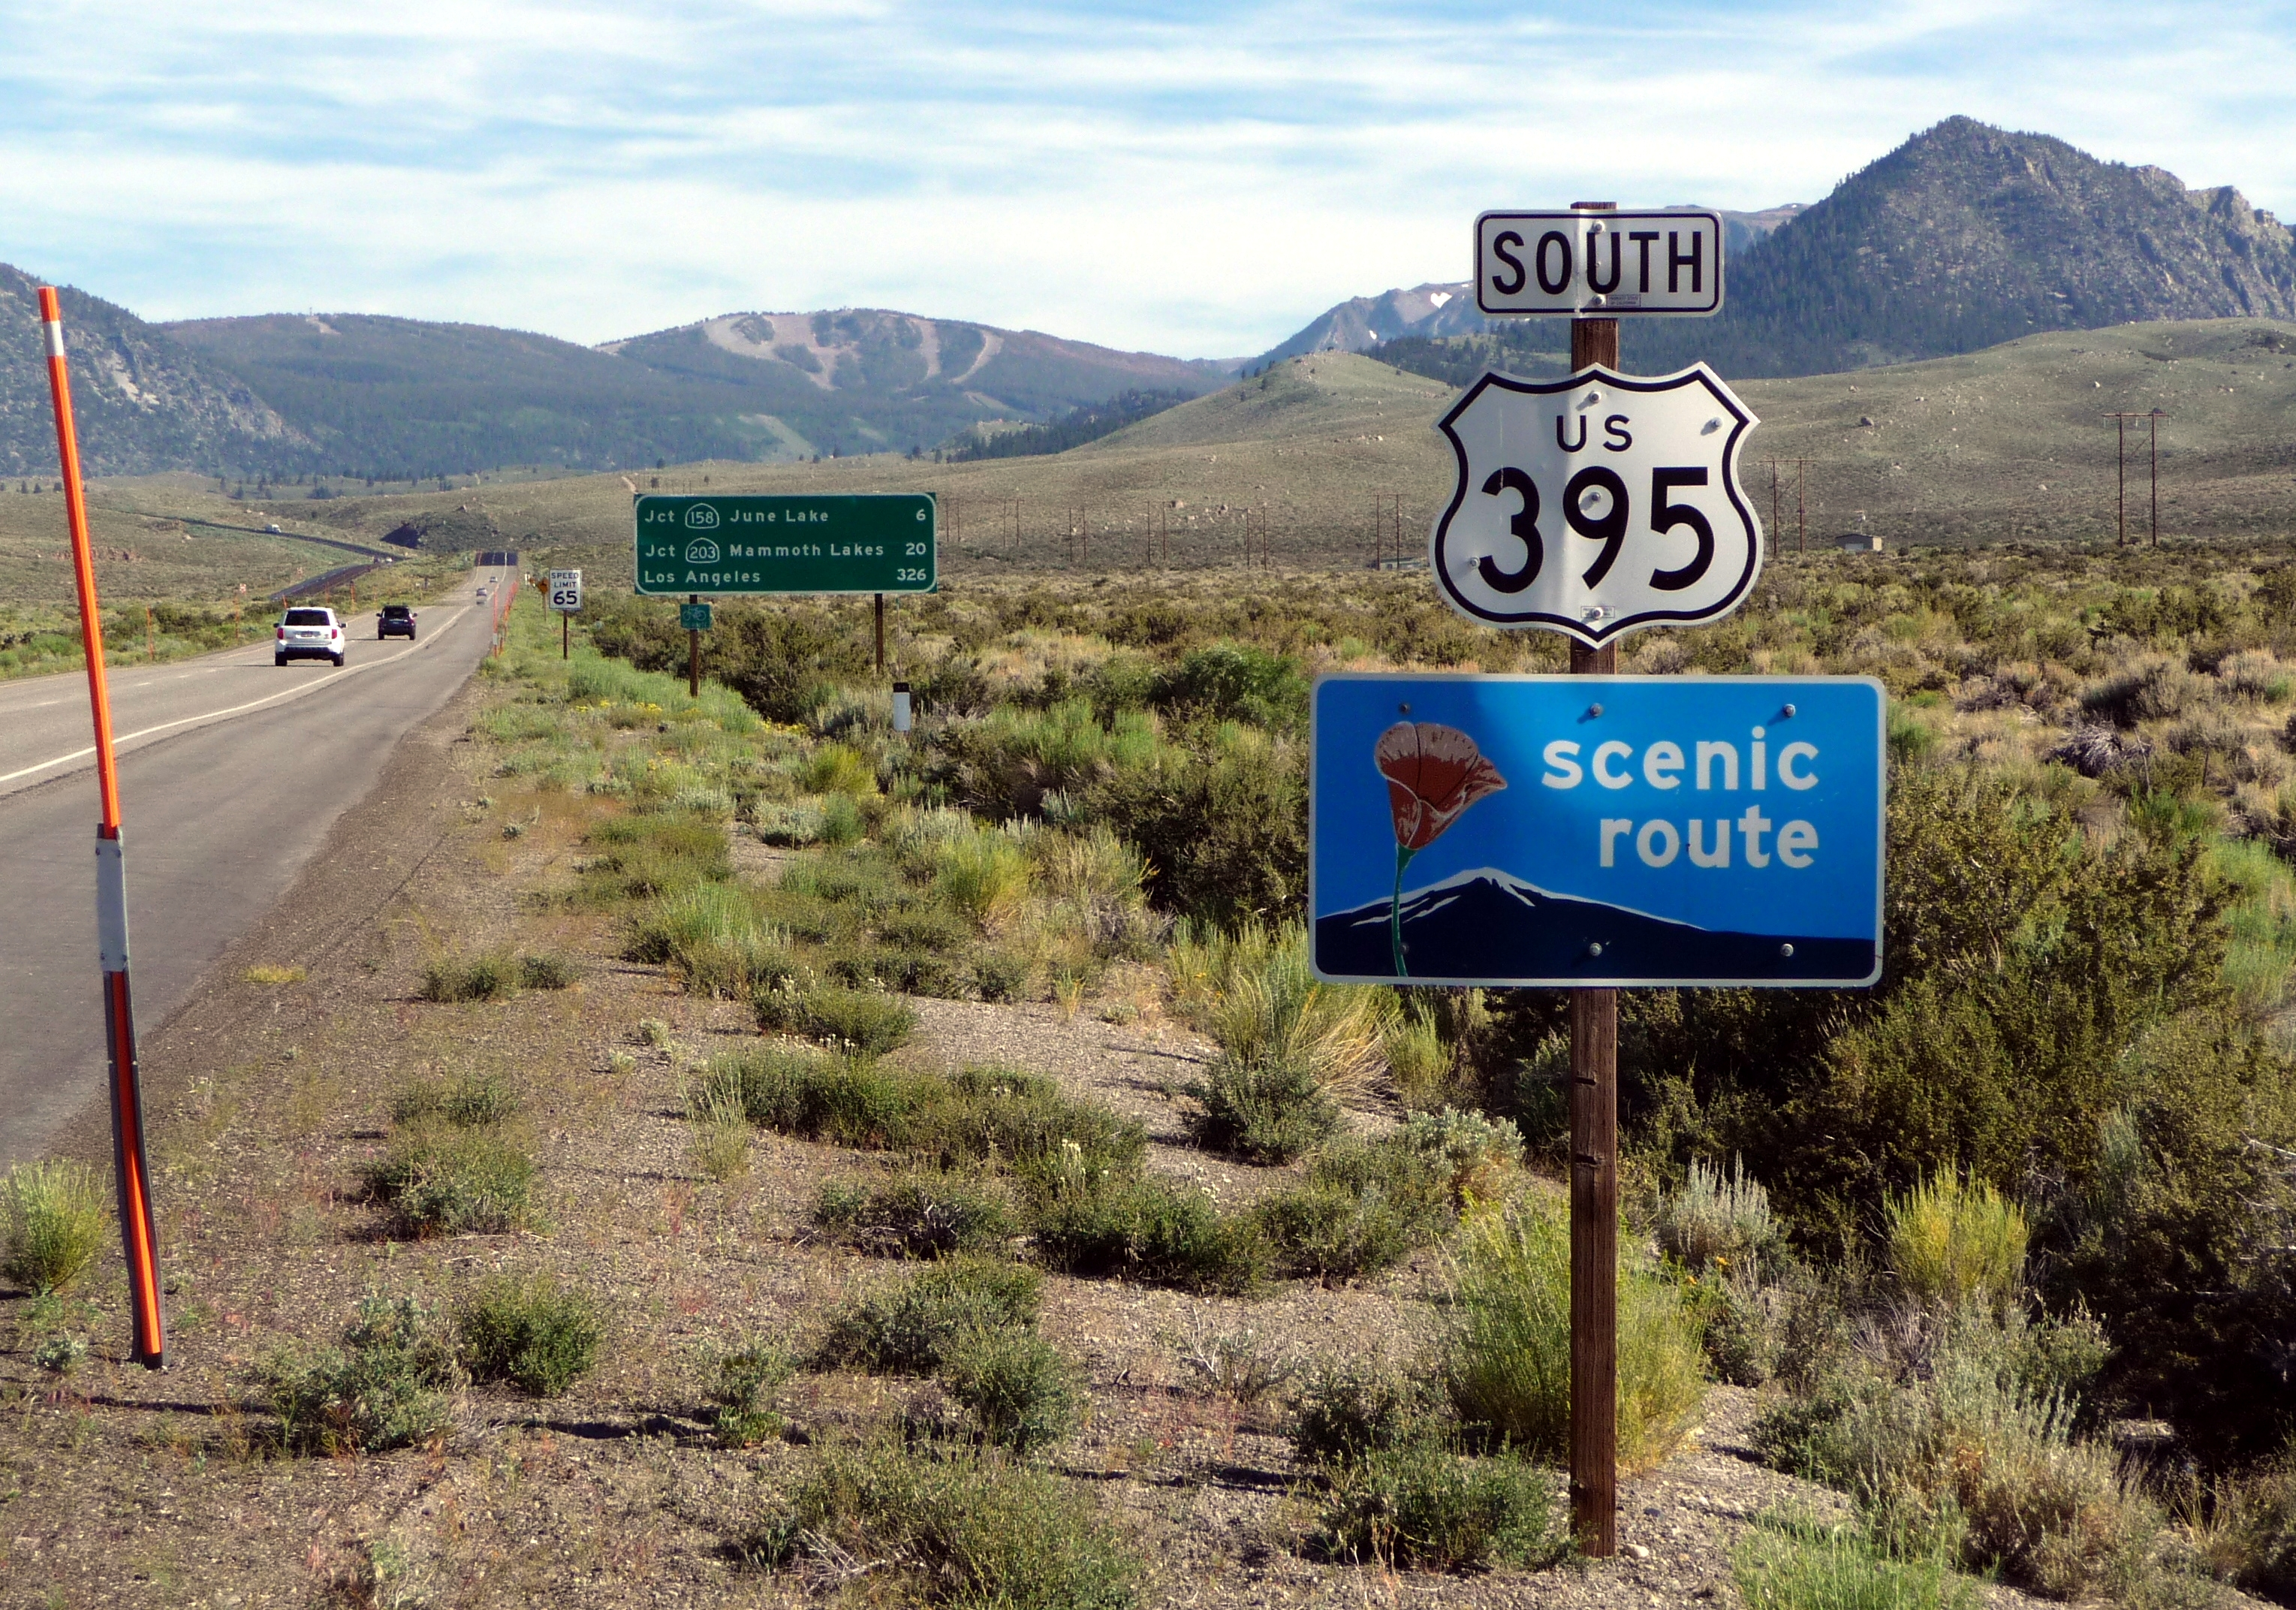 File:US 395 South sign near Mono Craters.JPG